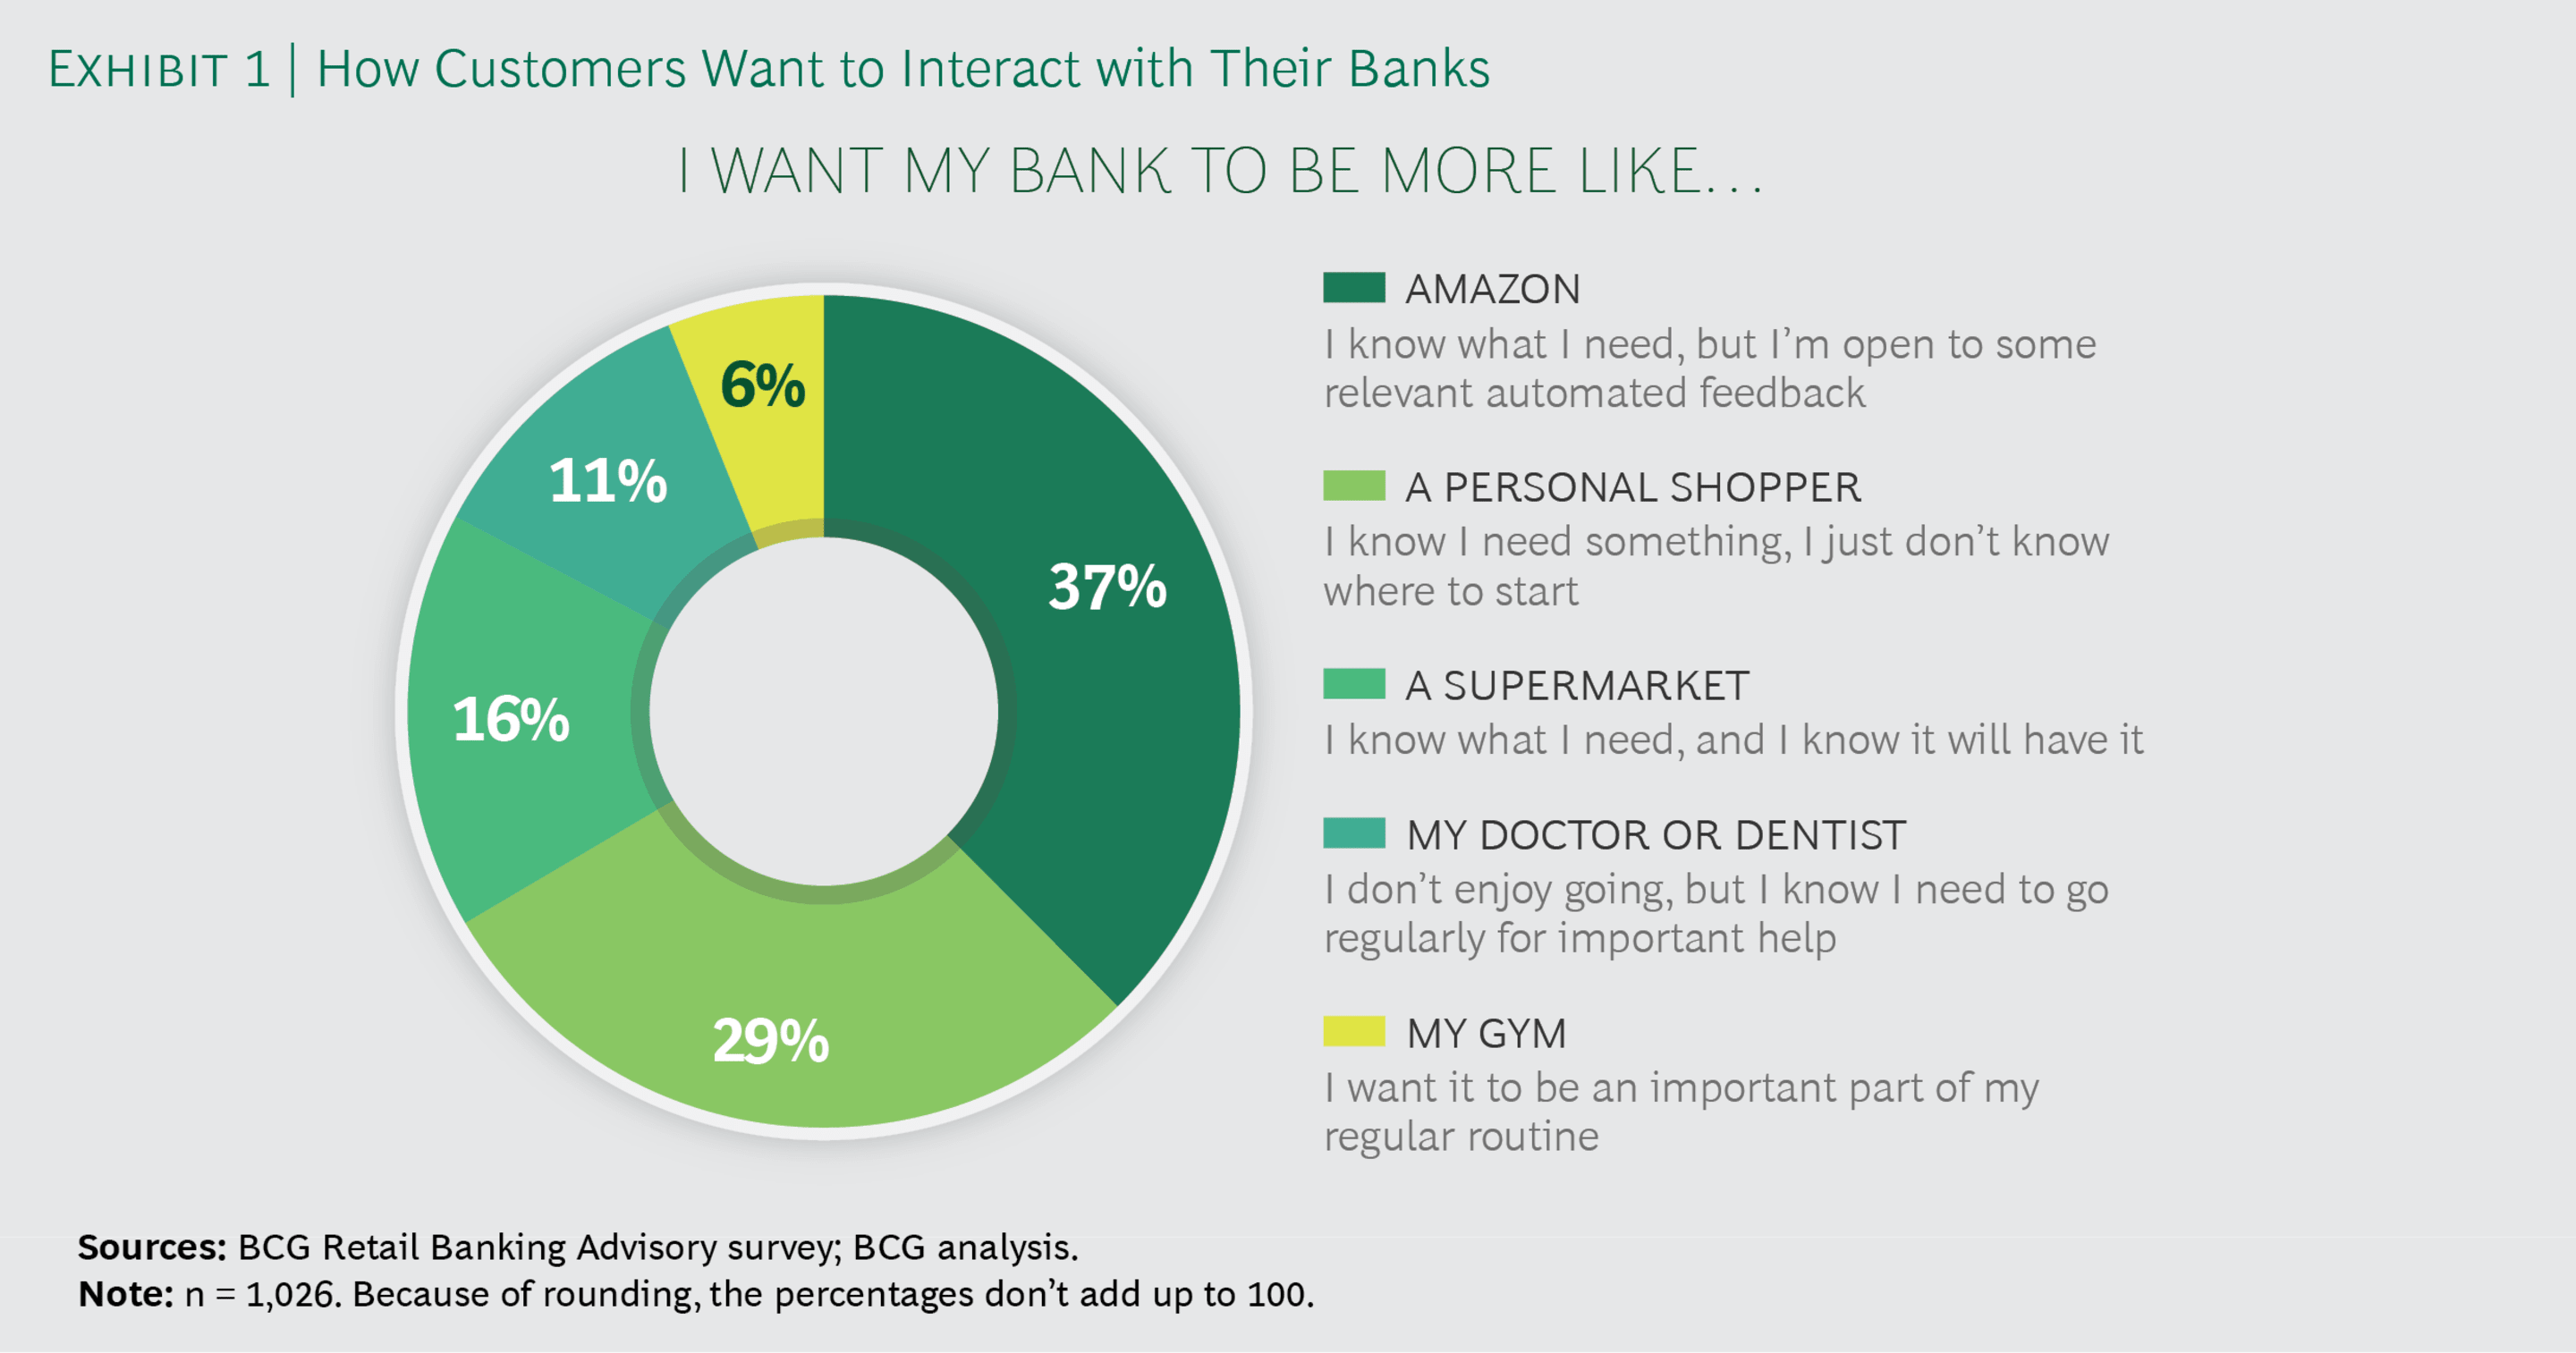 How Customers Want to Interact with Their Banks